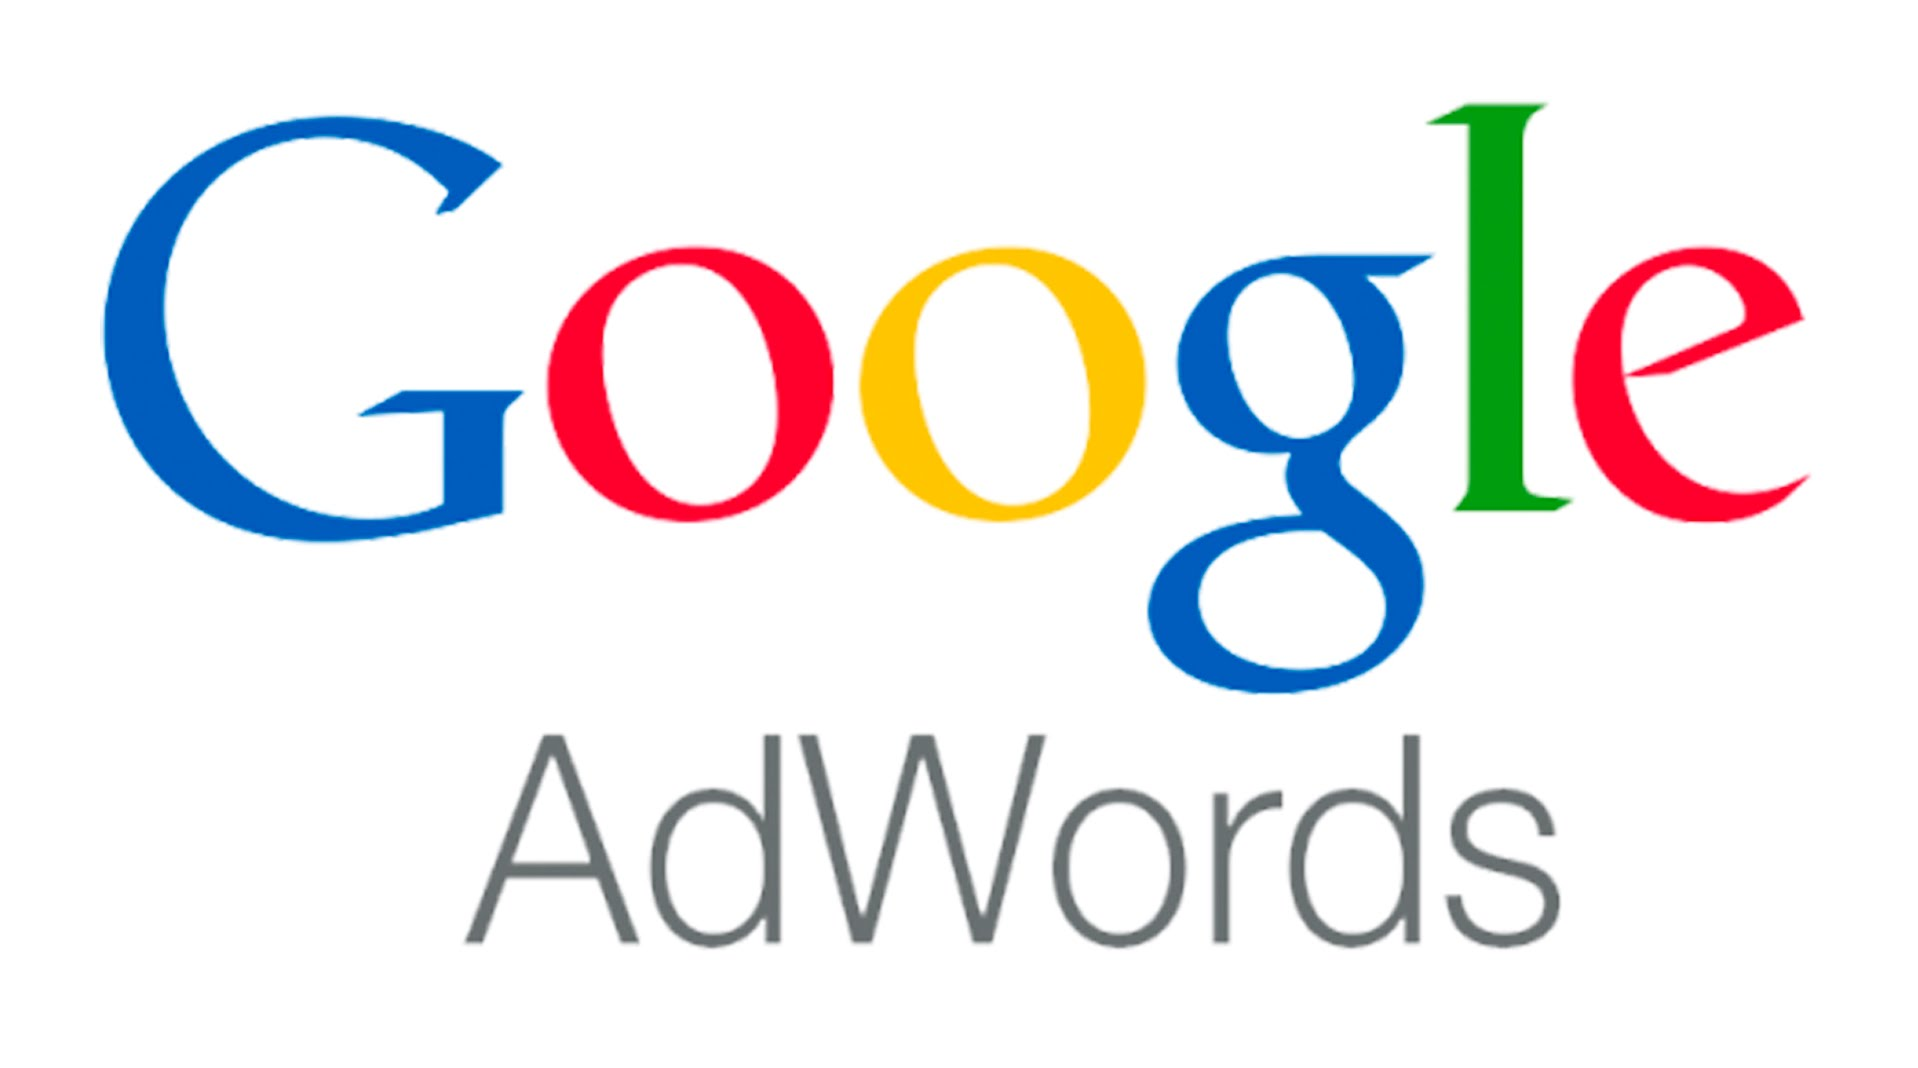 deliver the Answer for Google Adwords Fundamentals Exam